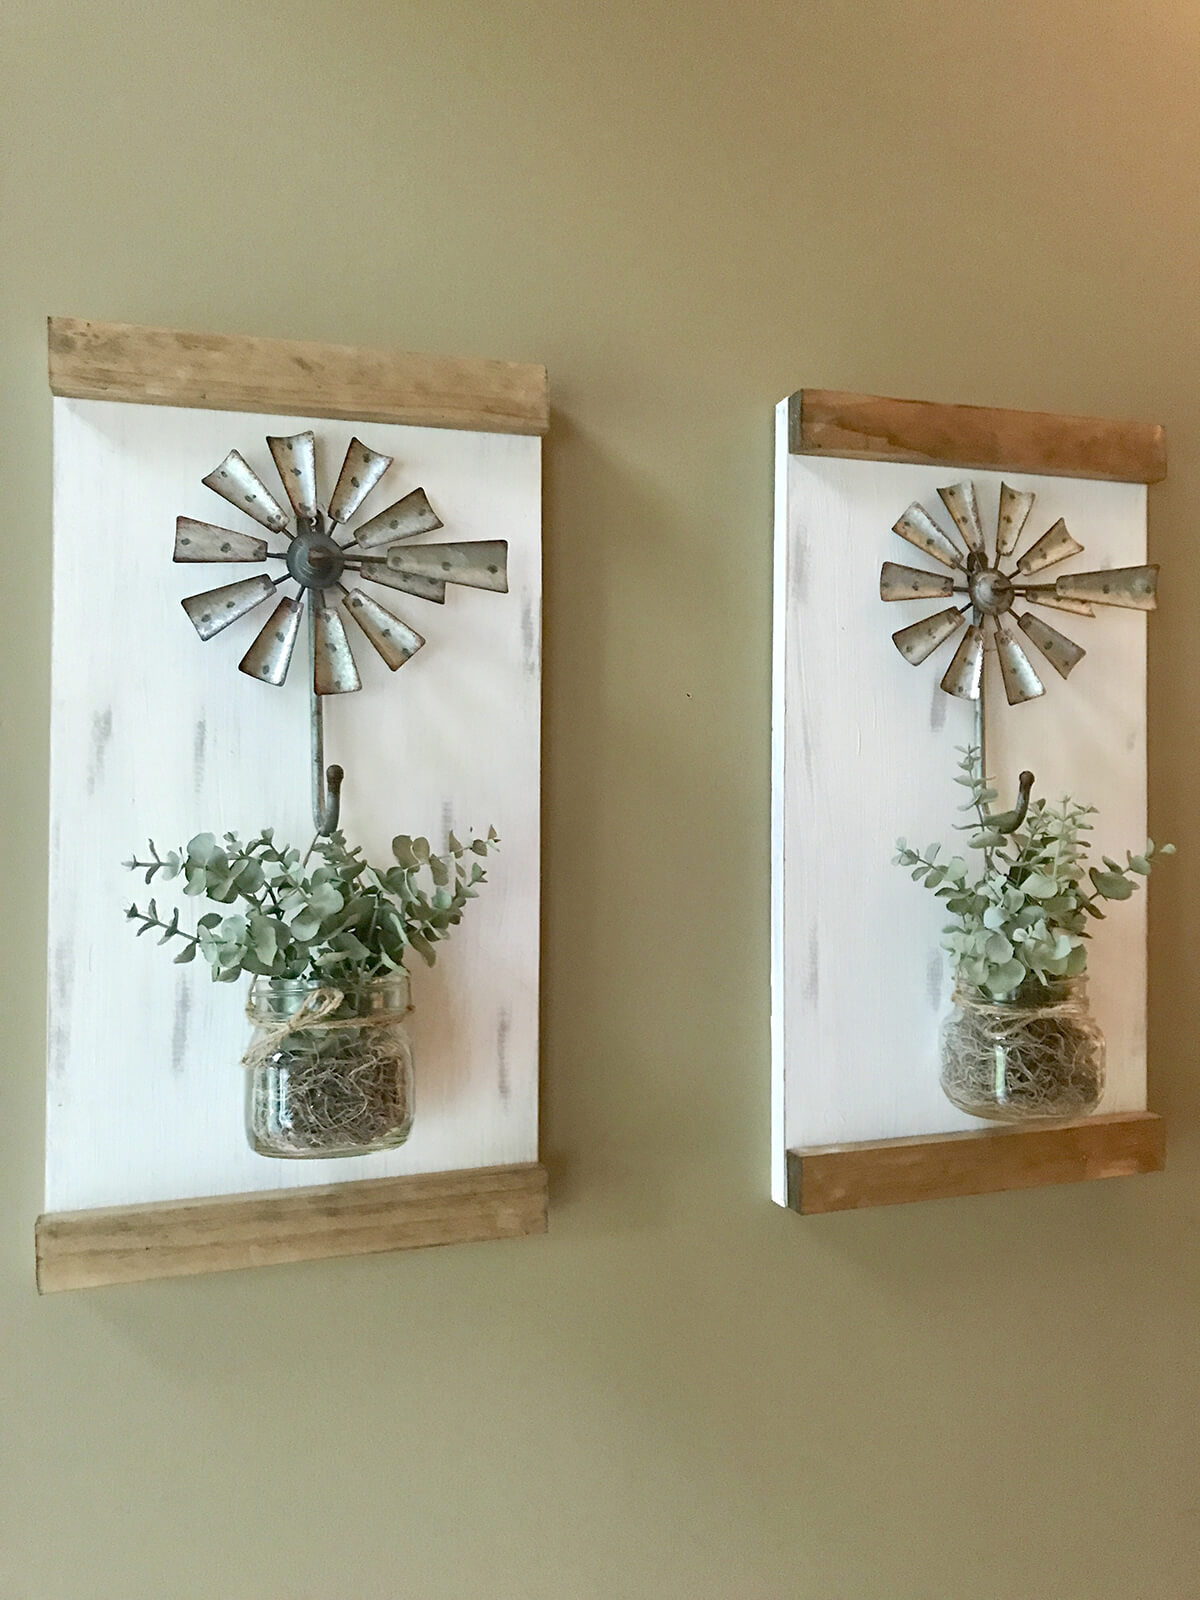 Homemade Windmill Planters for Artists and Designers